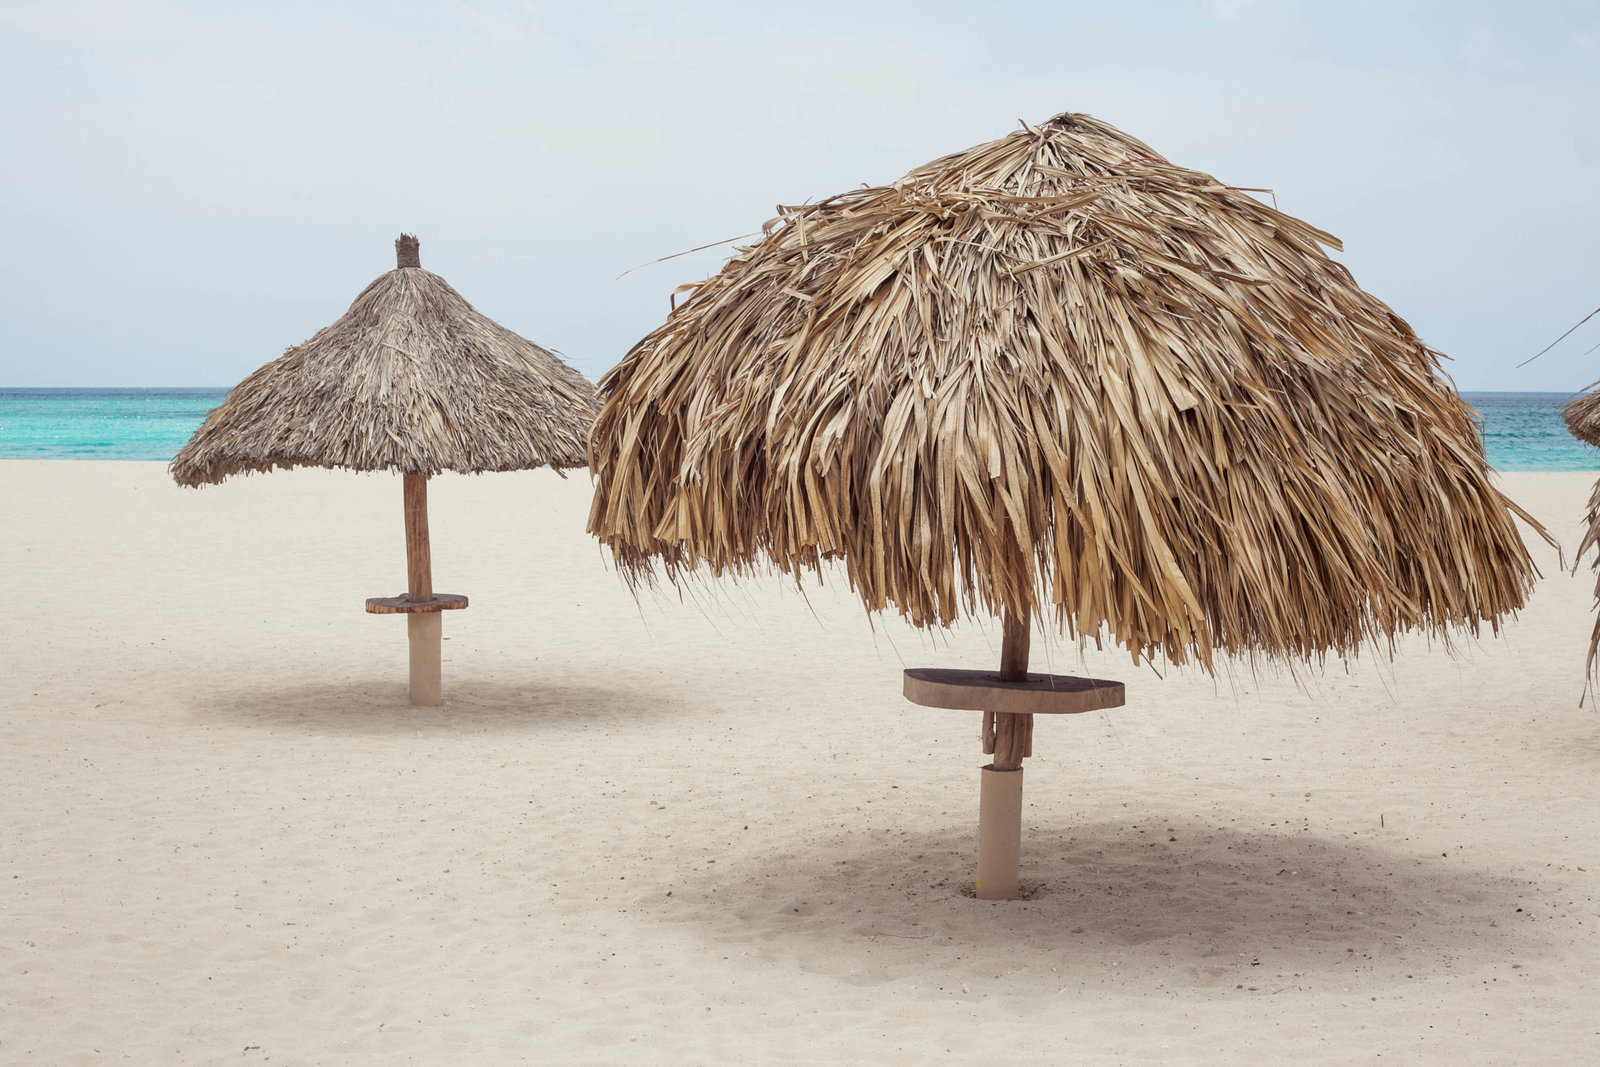 aruba-palm-leaves-beach-editorial-travel-kate-timbers-photography086